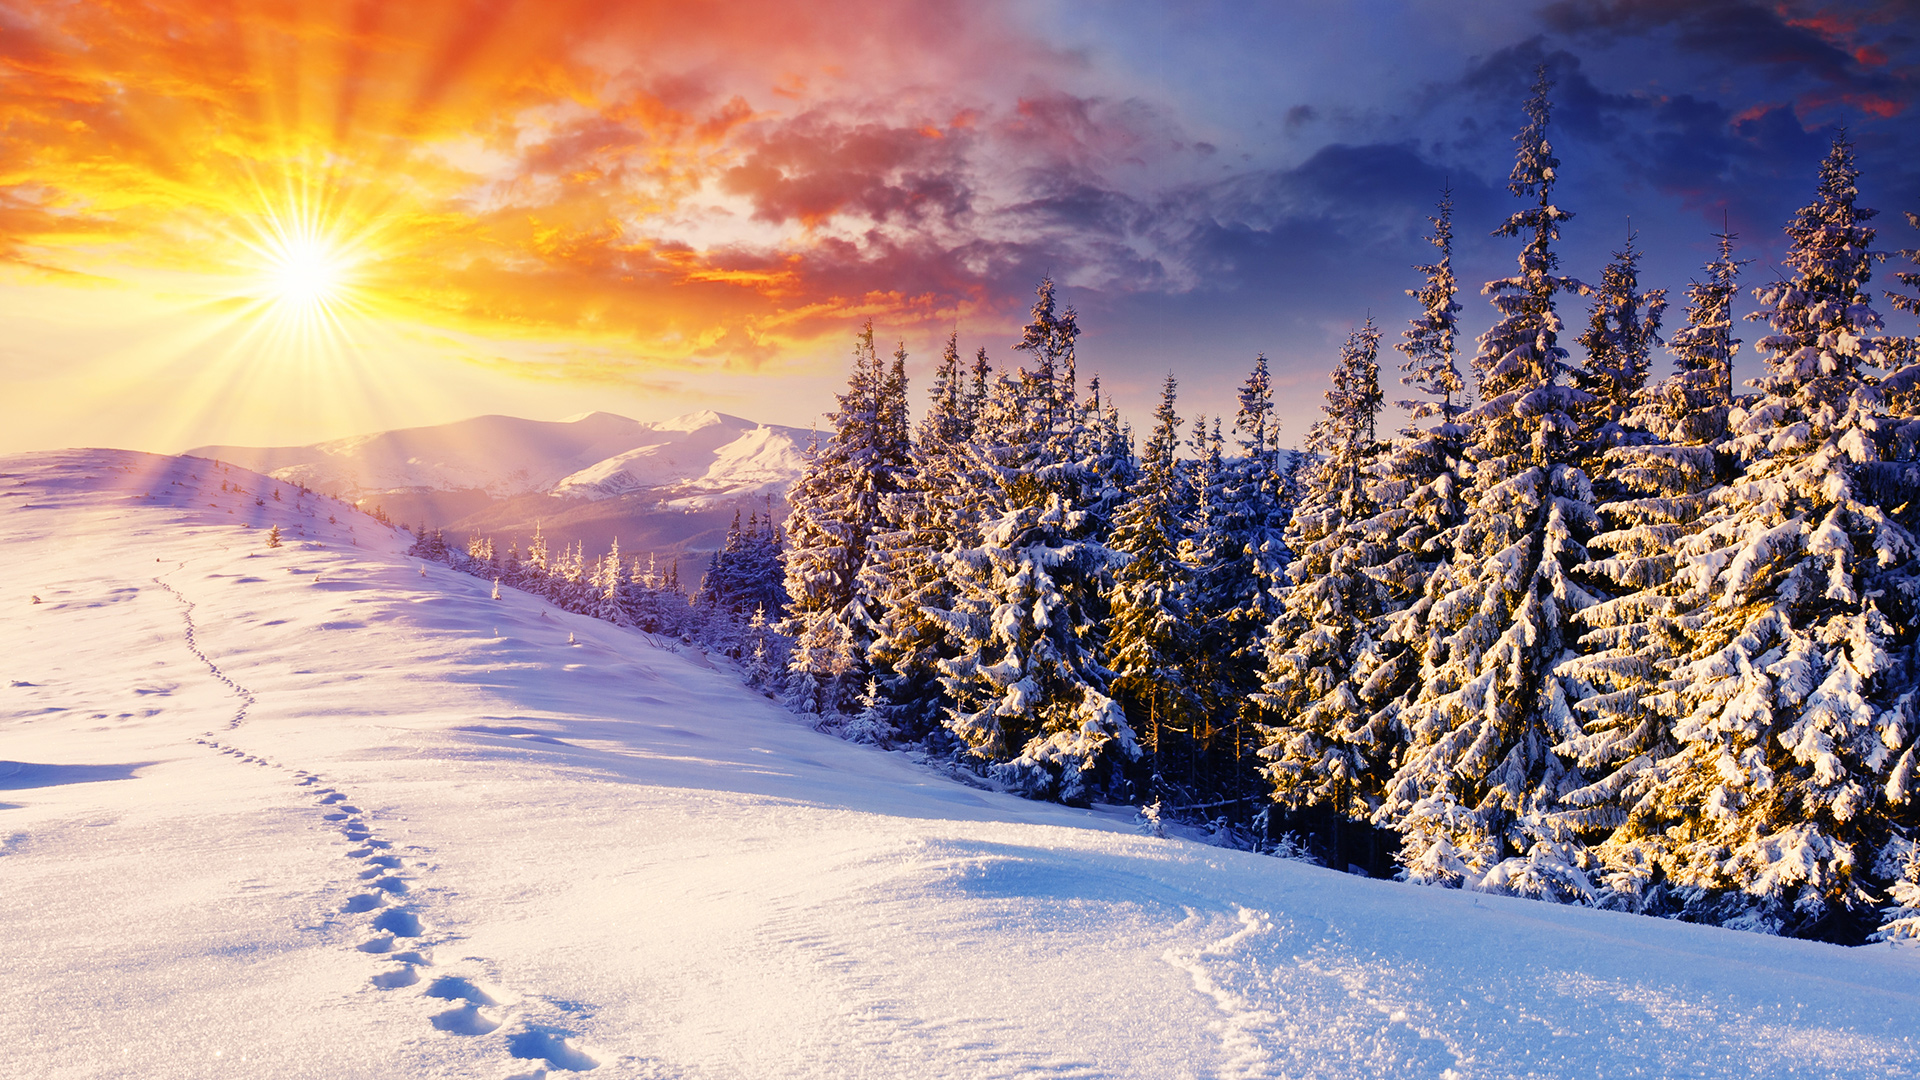 31 2015 By Stephen Comments Off on Winter HD Desktop Wallpapers 1920x1080